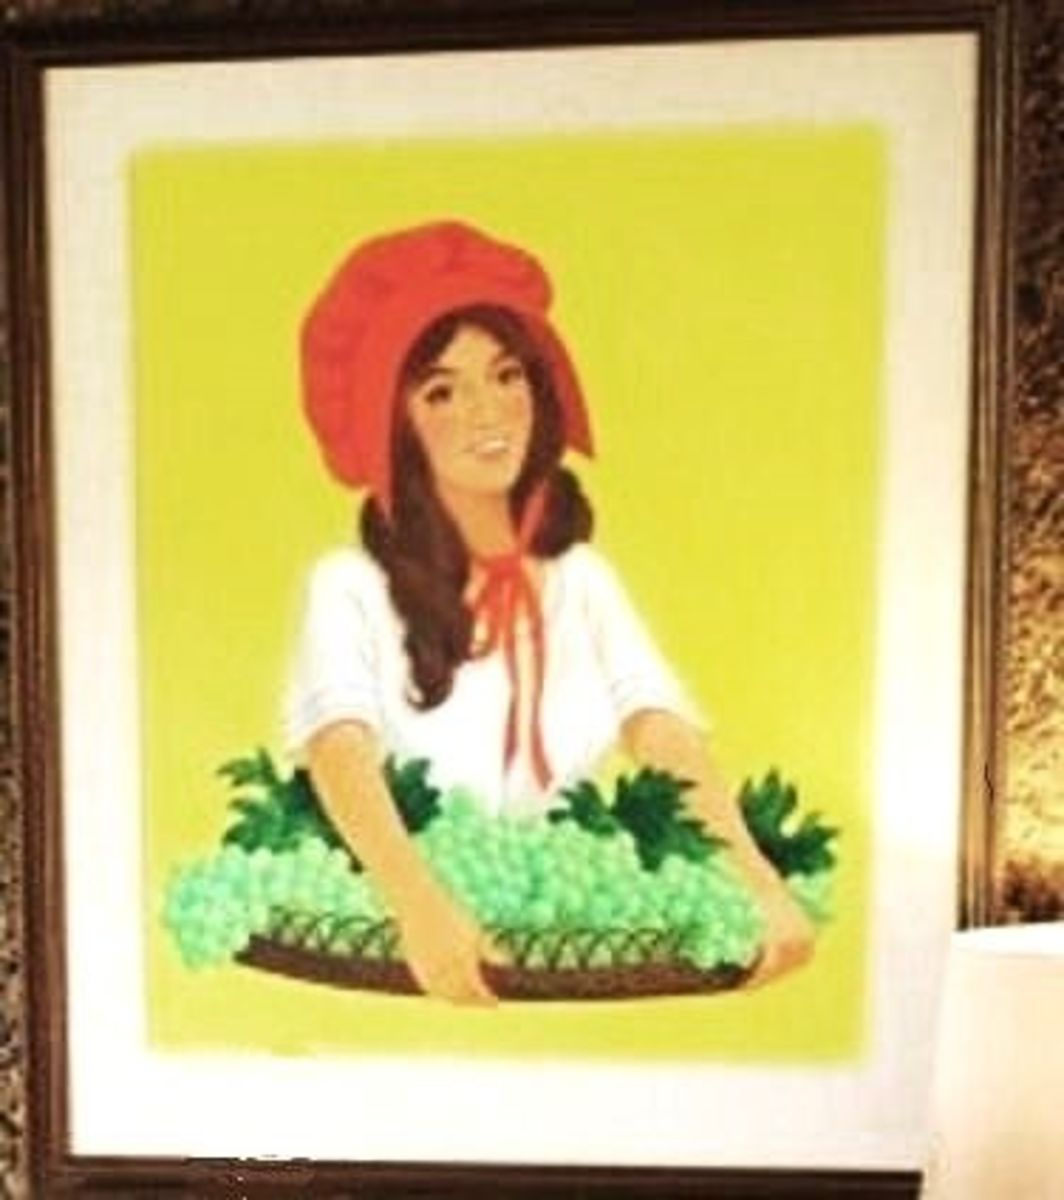 This is the original painting I posed for, it's in the office of the SM Plant